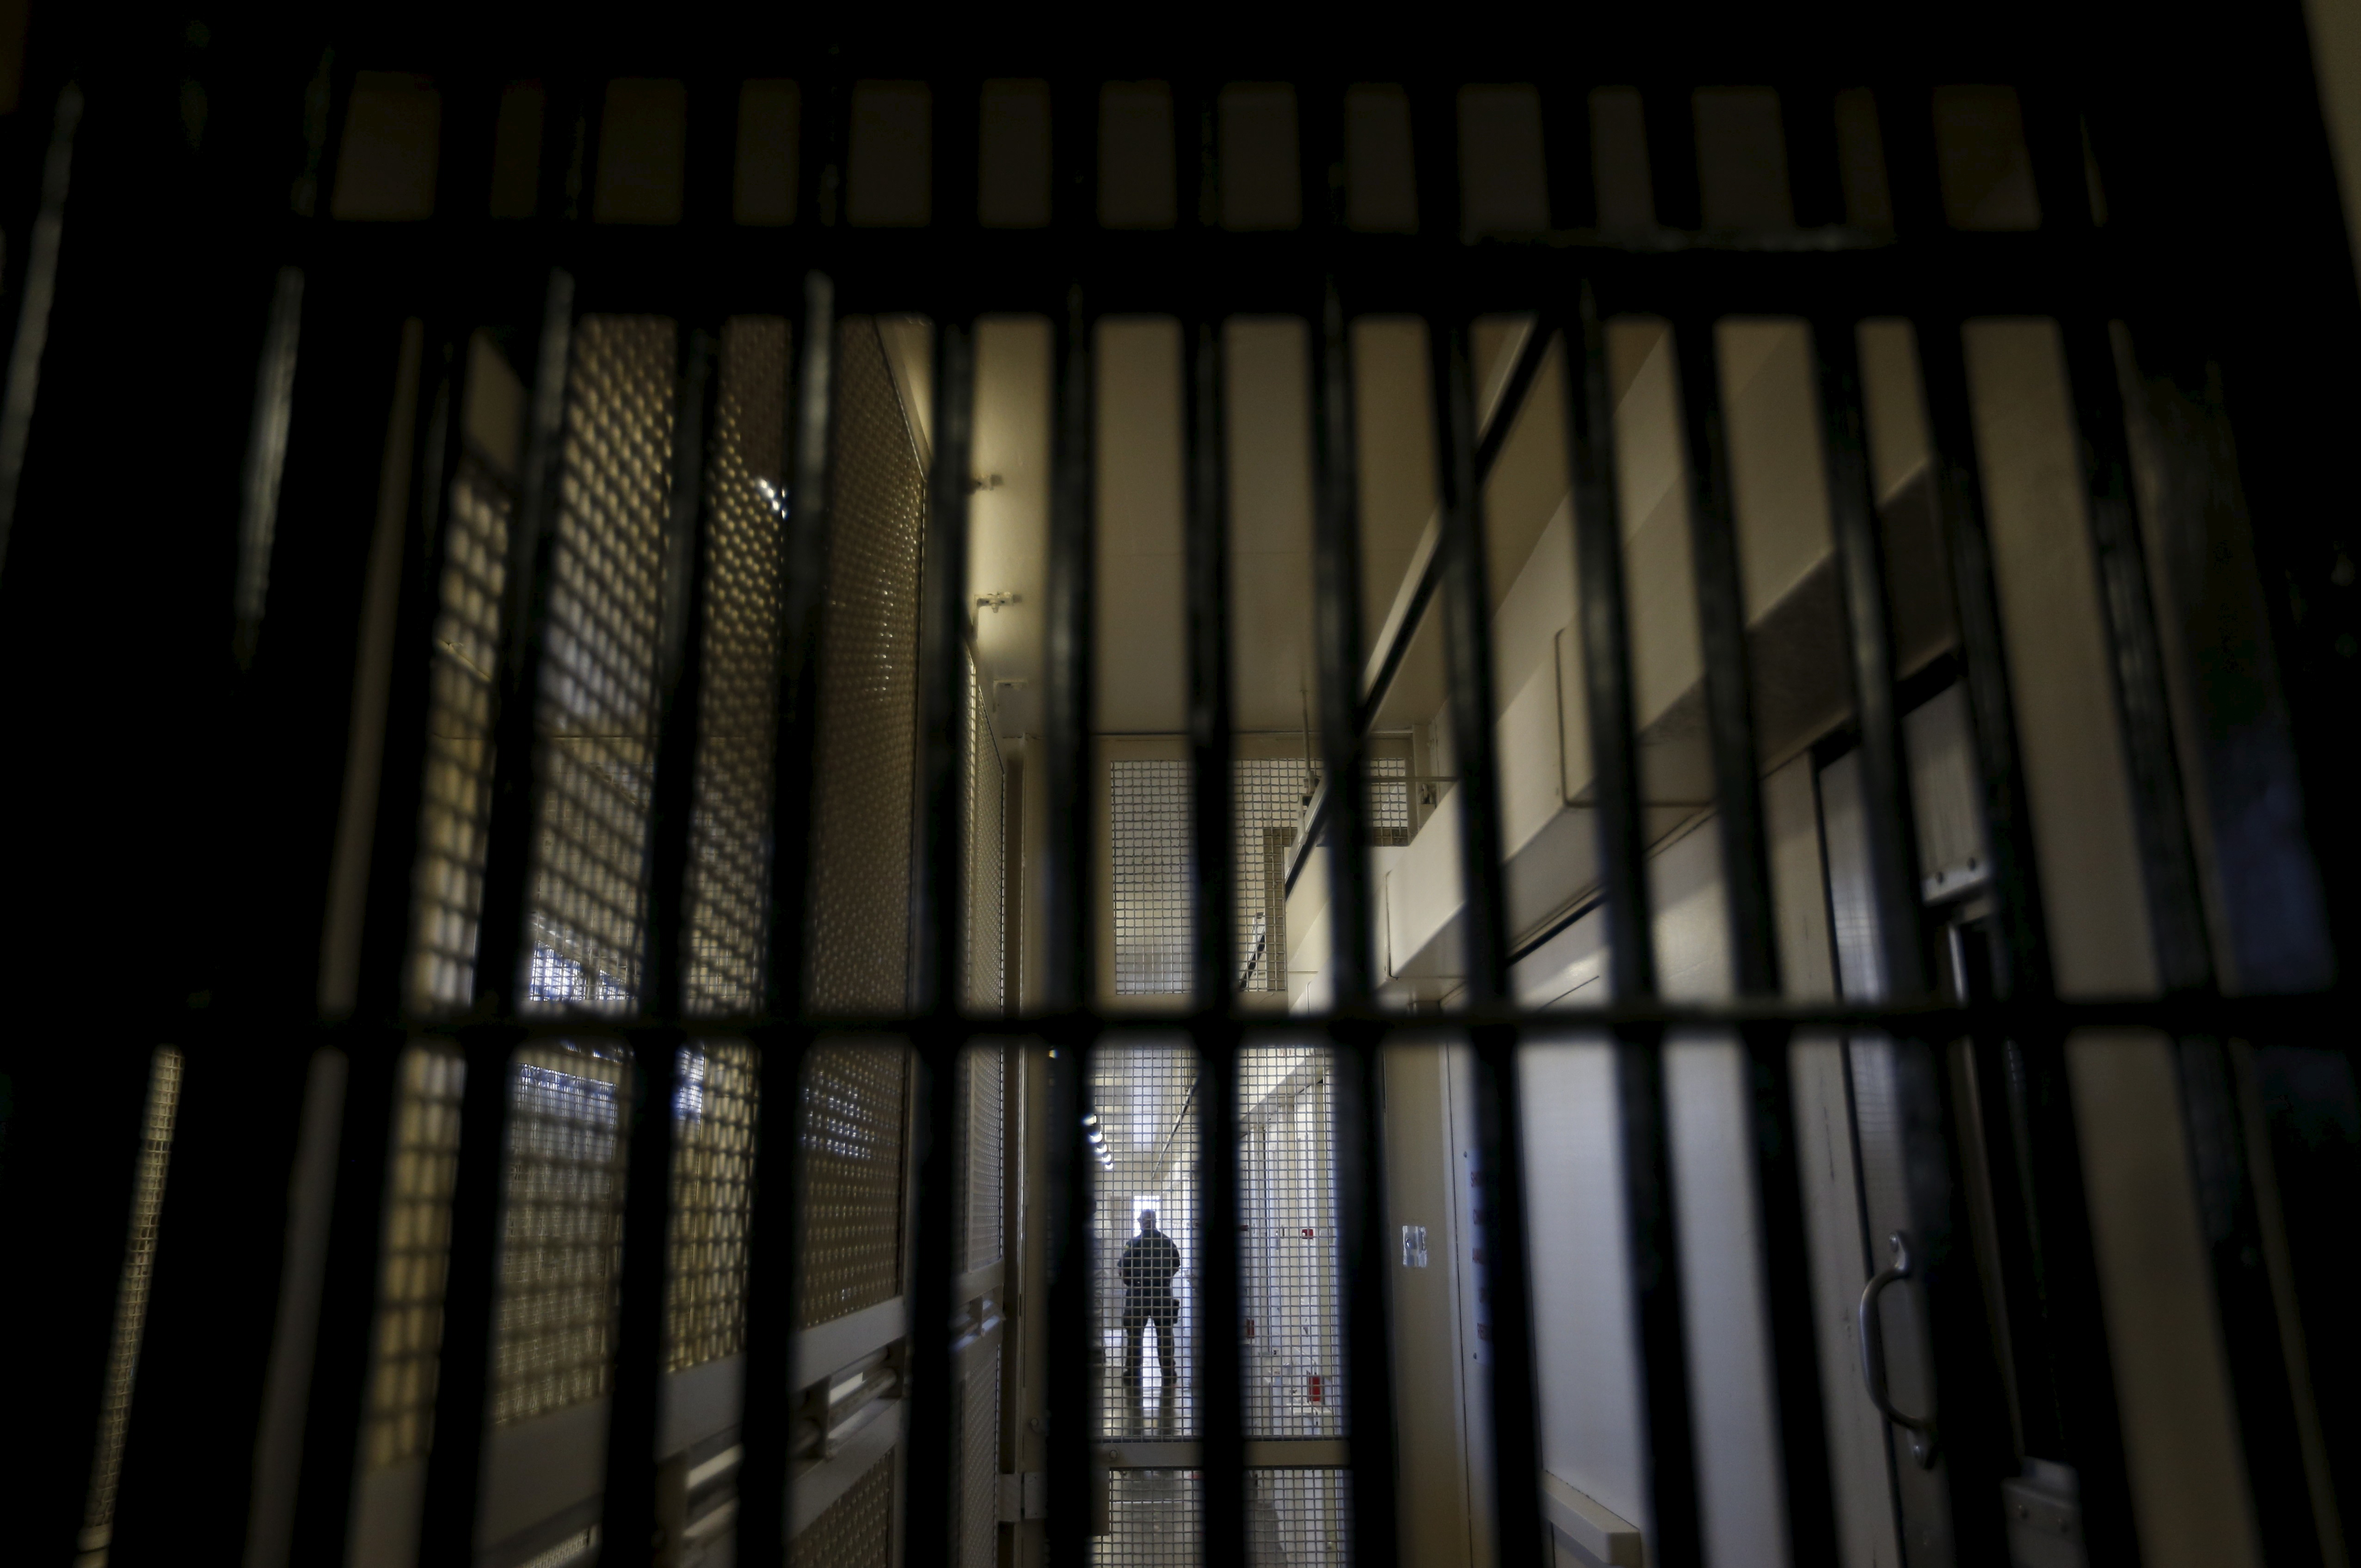 A guard stands behind bars at the Adjustment Center during a media tour of California's Death Row at San Quentin State Prison in San Quentin, California December 29, 2015. America's most populous state, which has not carried out an execution in a decade, begins 2016 at a pivotal juncture, as legal developments hasten the march toward resuming executions, while opponents seek to end the death penalty at the ballot box. To match Feature CALIFORNIA-DEATH-PENALTY/ Picture taken December 29, 2015. REUTERS/Stephen Lam - RTX21EDY